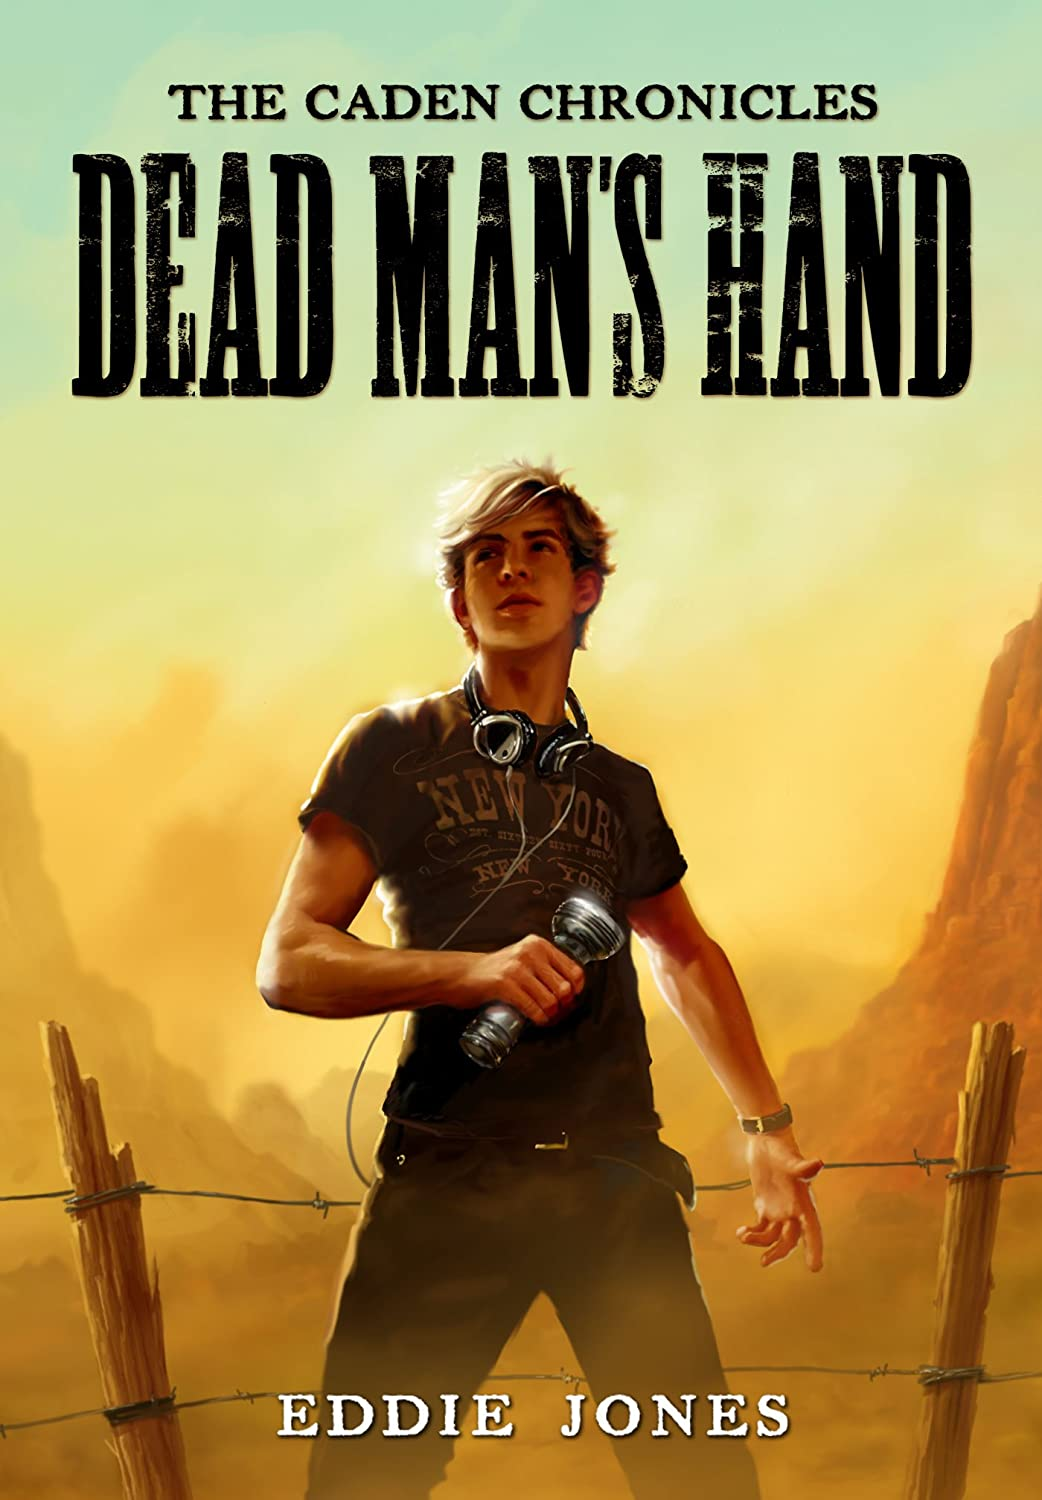 Dead Man's Hand (The Caden Chronicles) [Kindle Edition] Eddie Jones (Author)